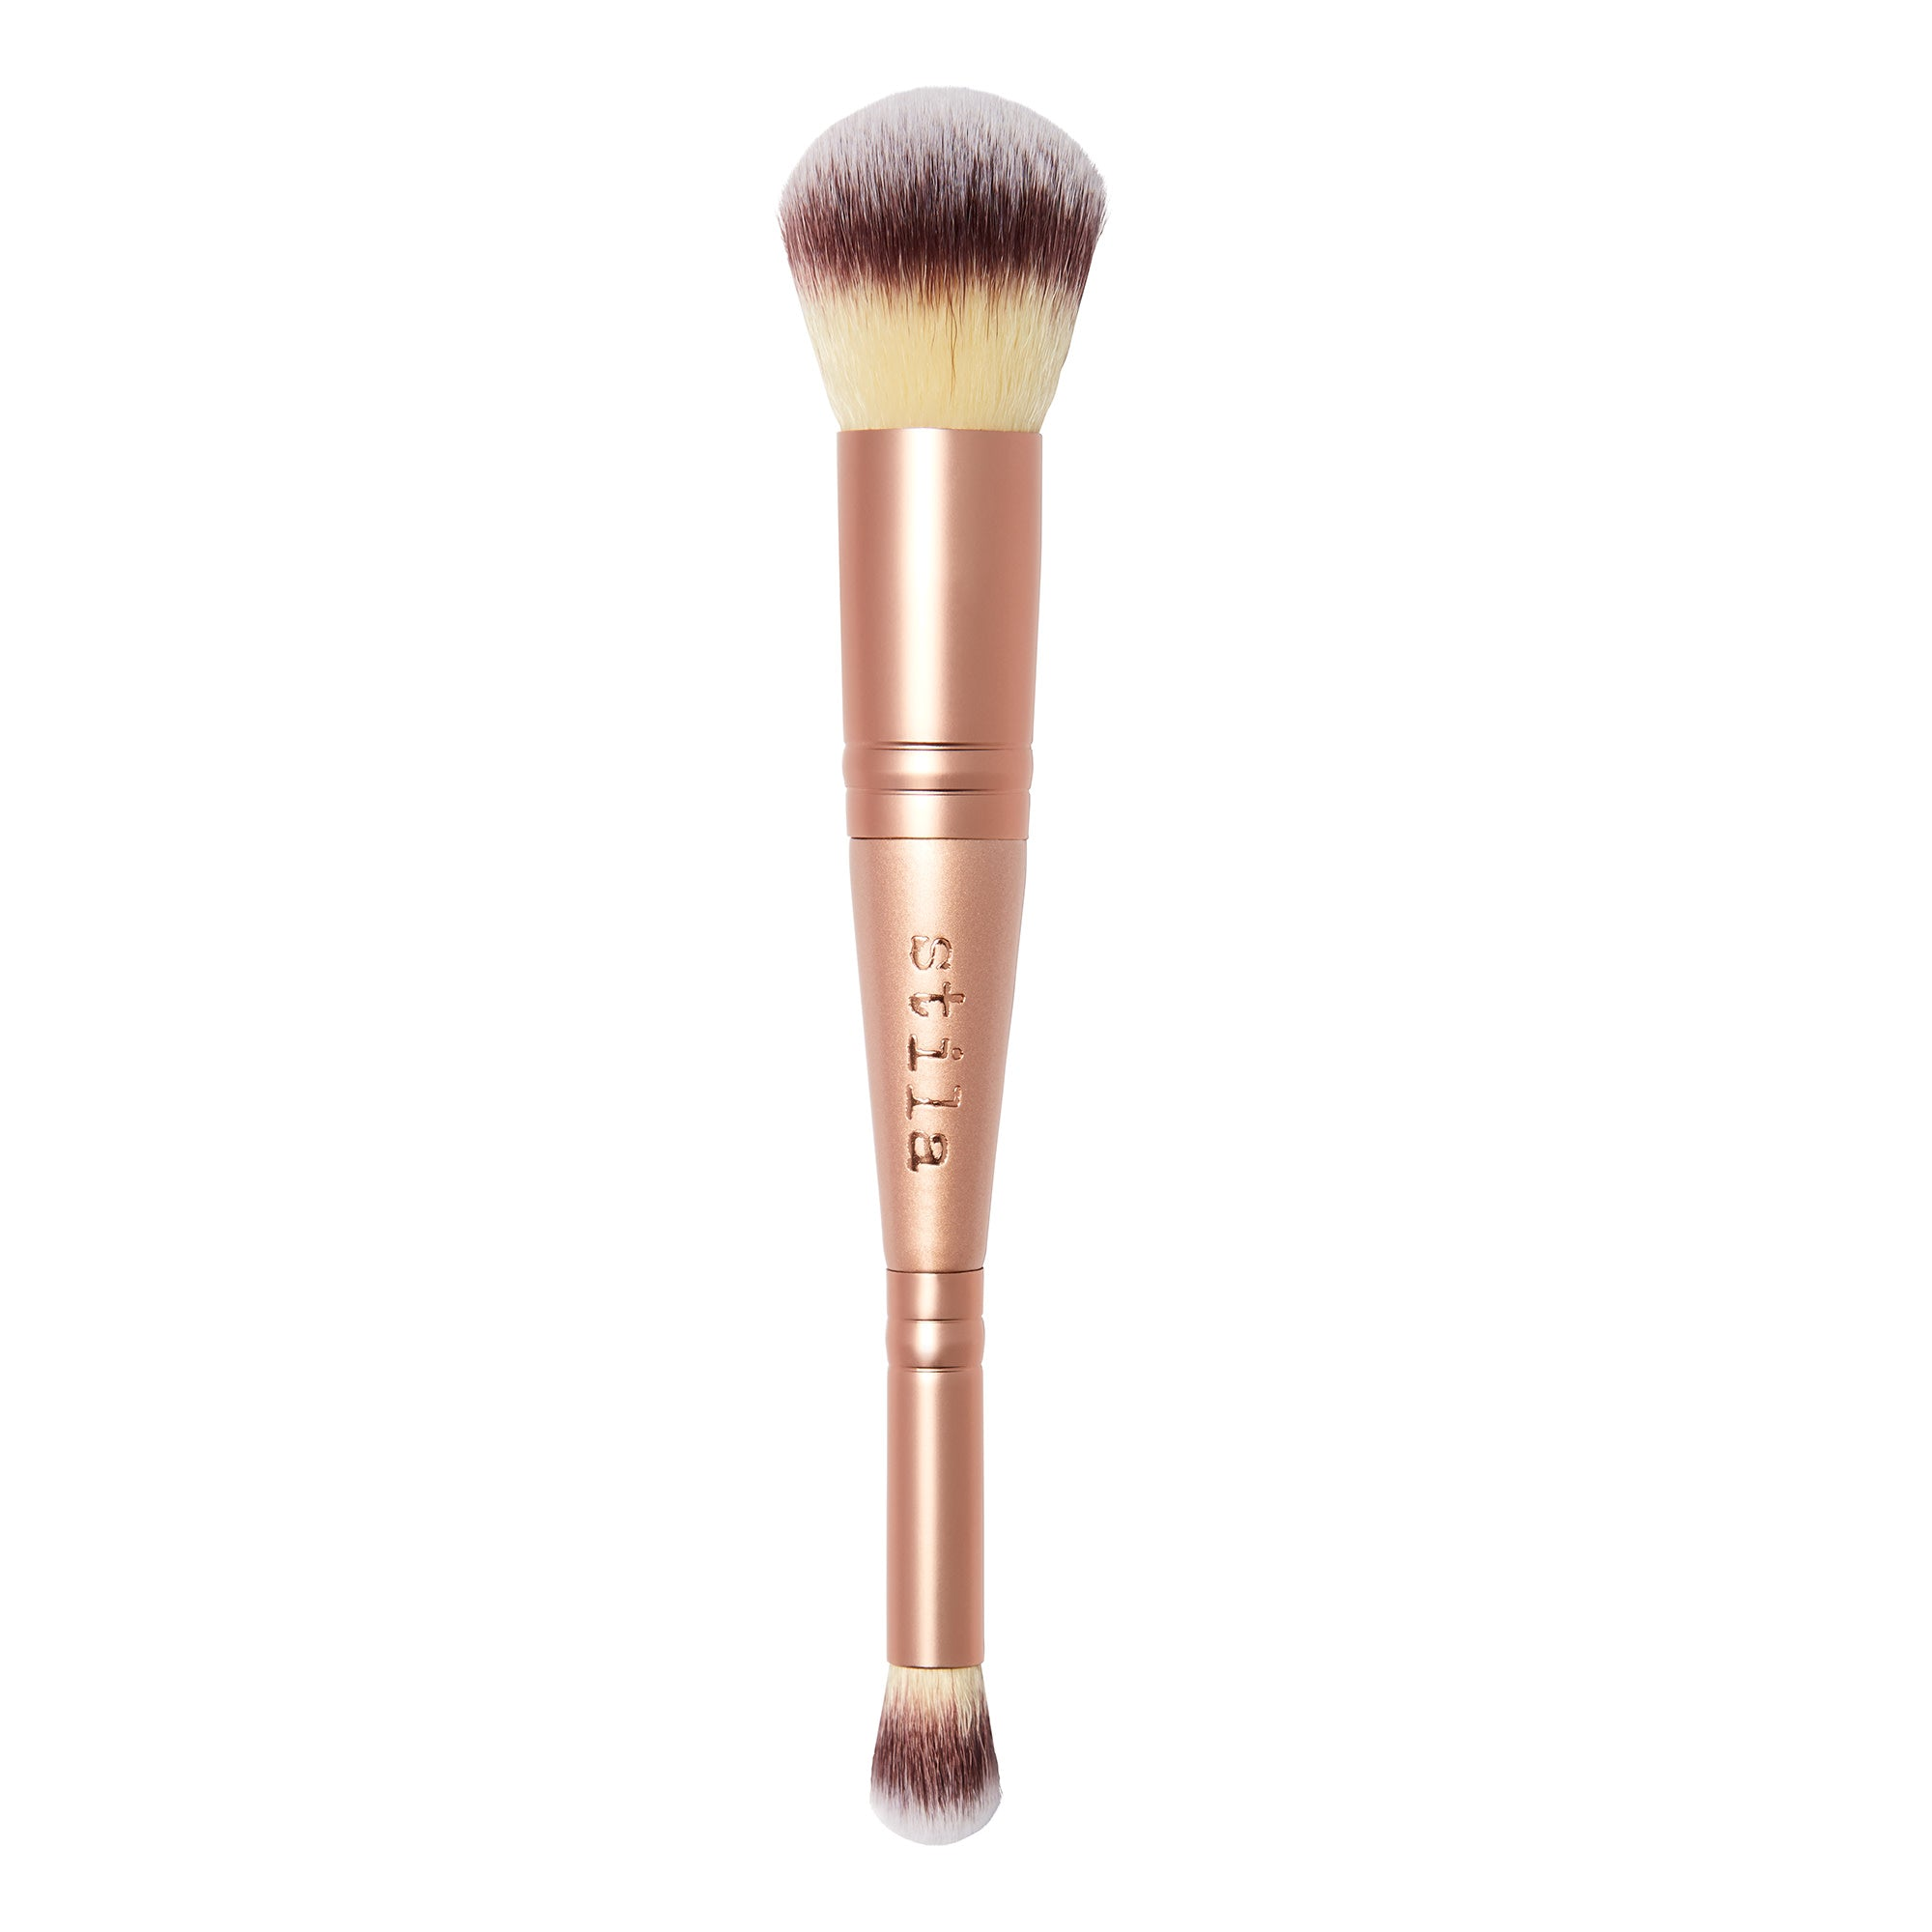 Stila Canada Double-Ended Complexion Brush